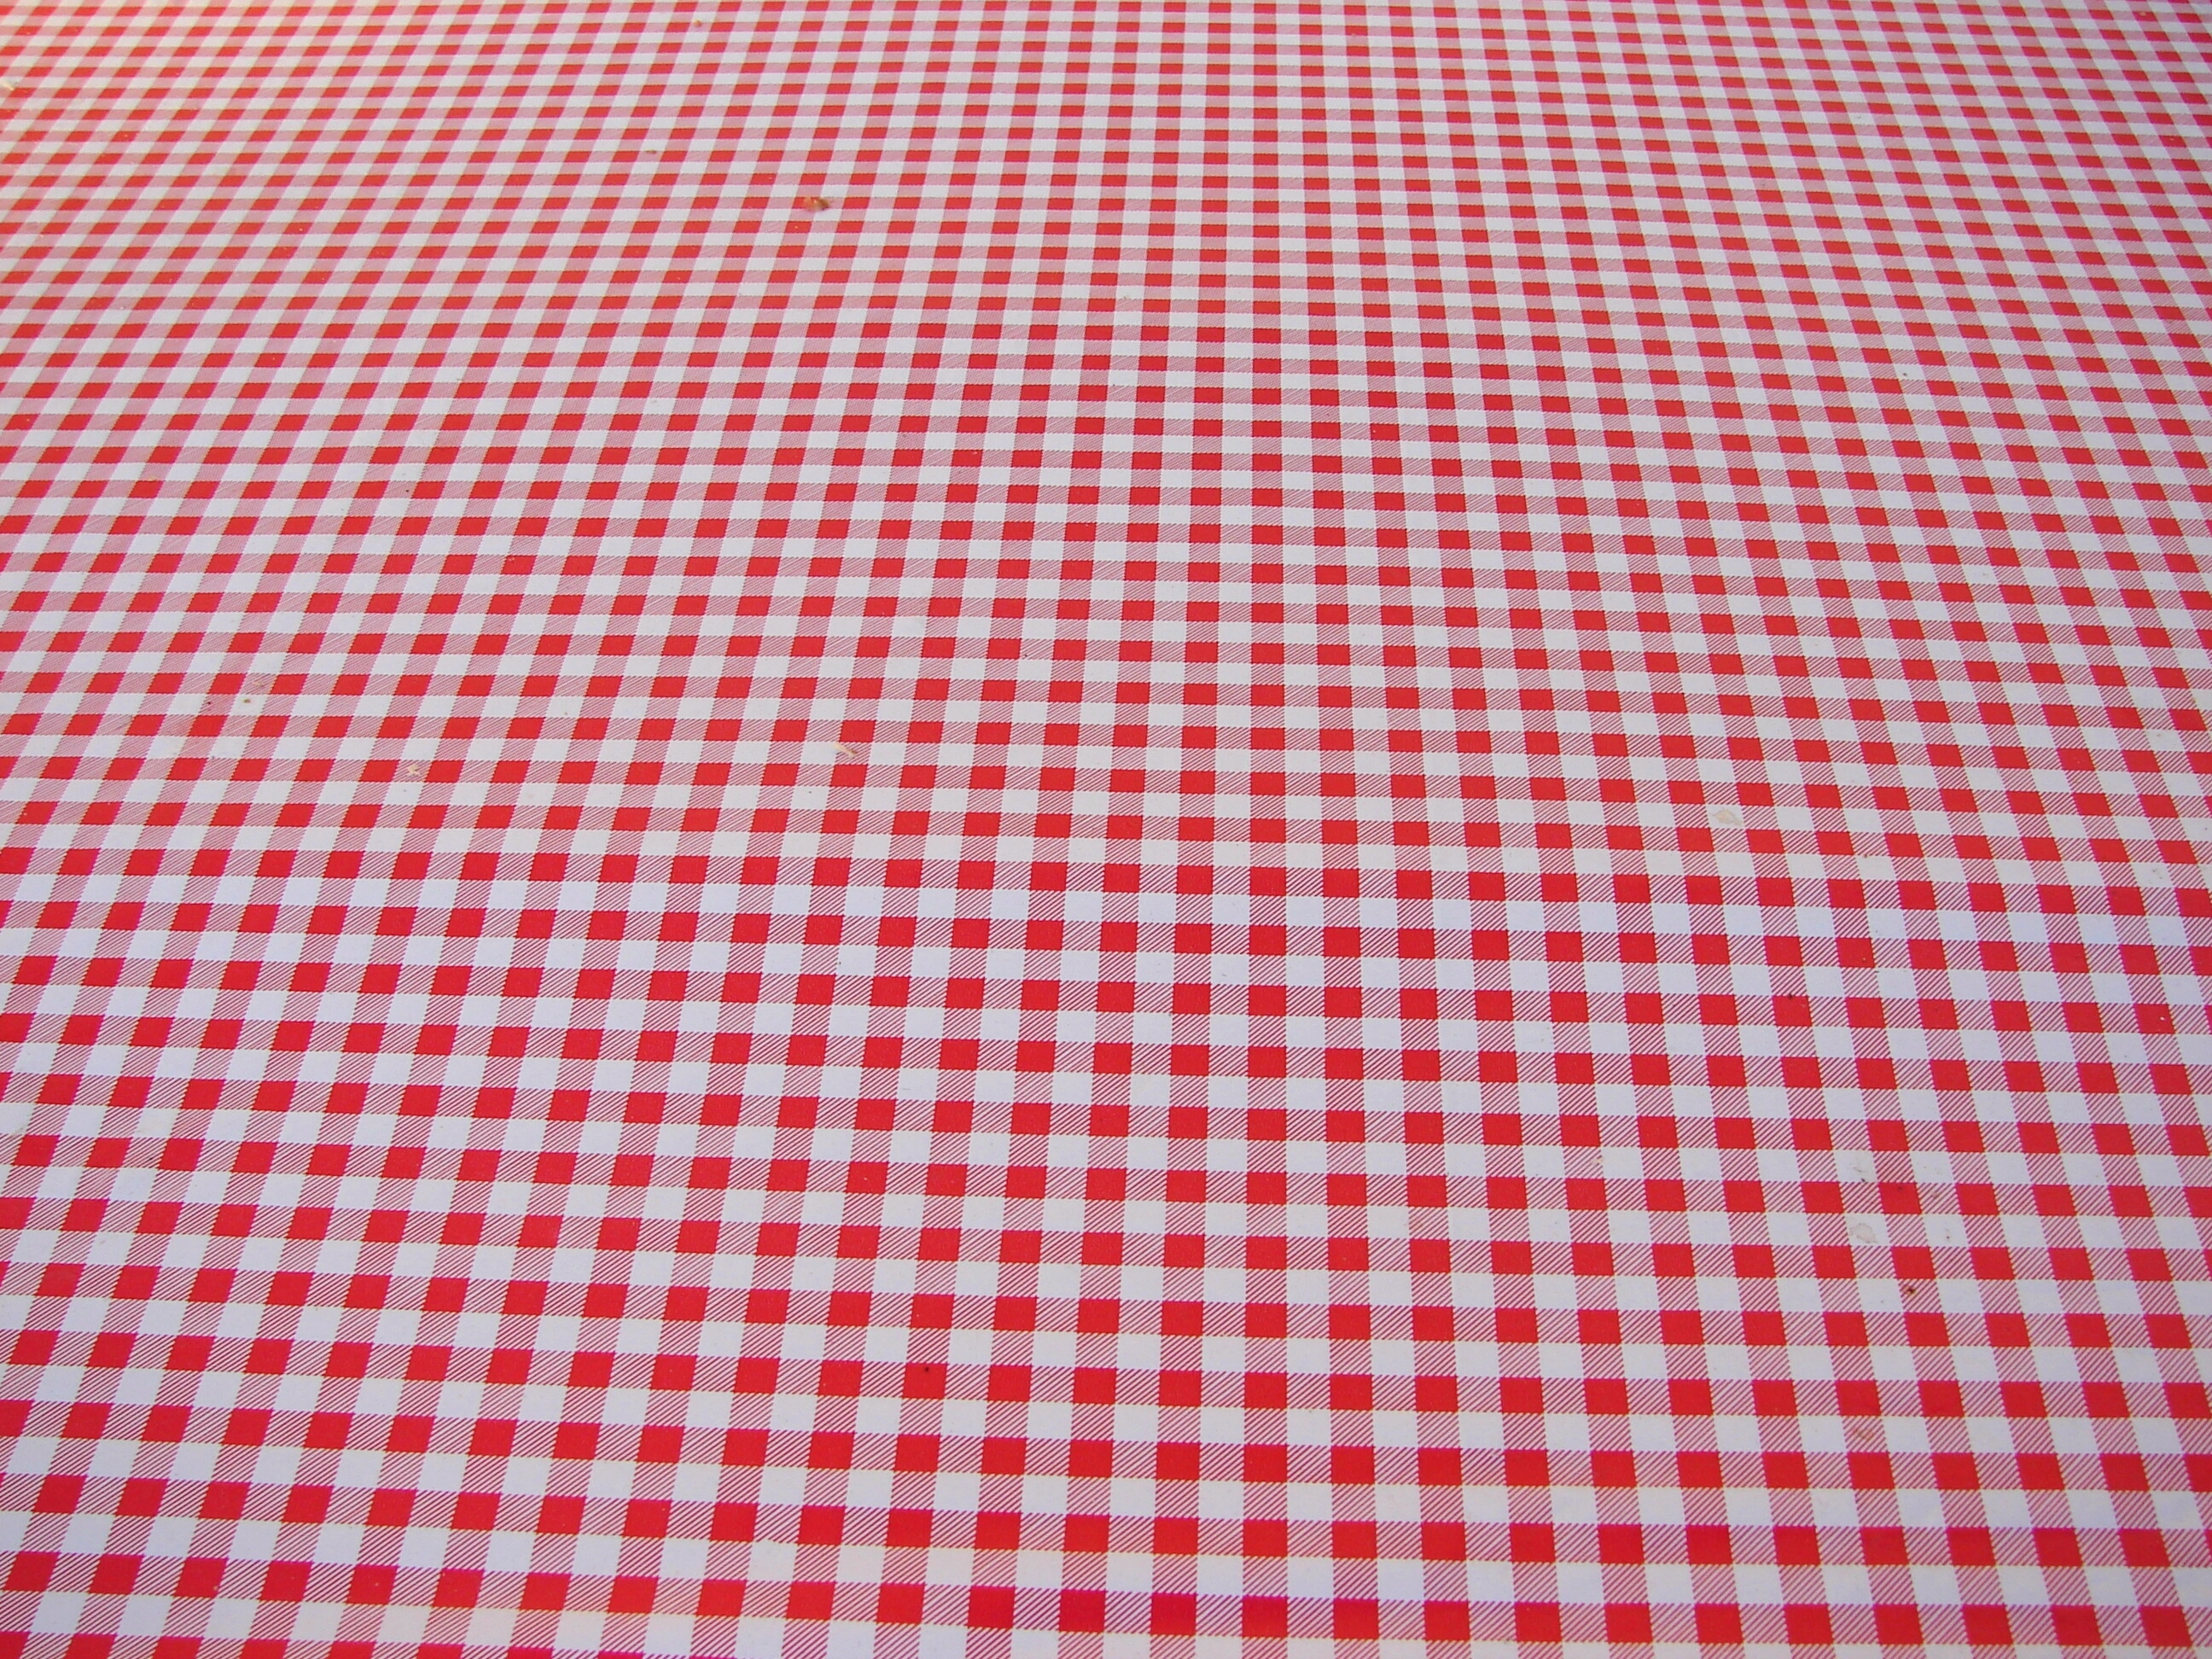 Red White Checked Tablecloth By FantasyStock Red White Checked Tablecloth  By FantasyStock